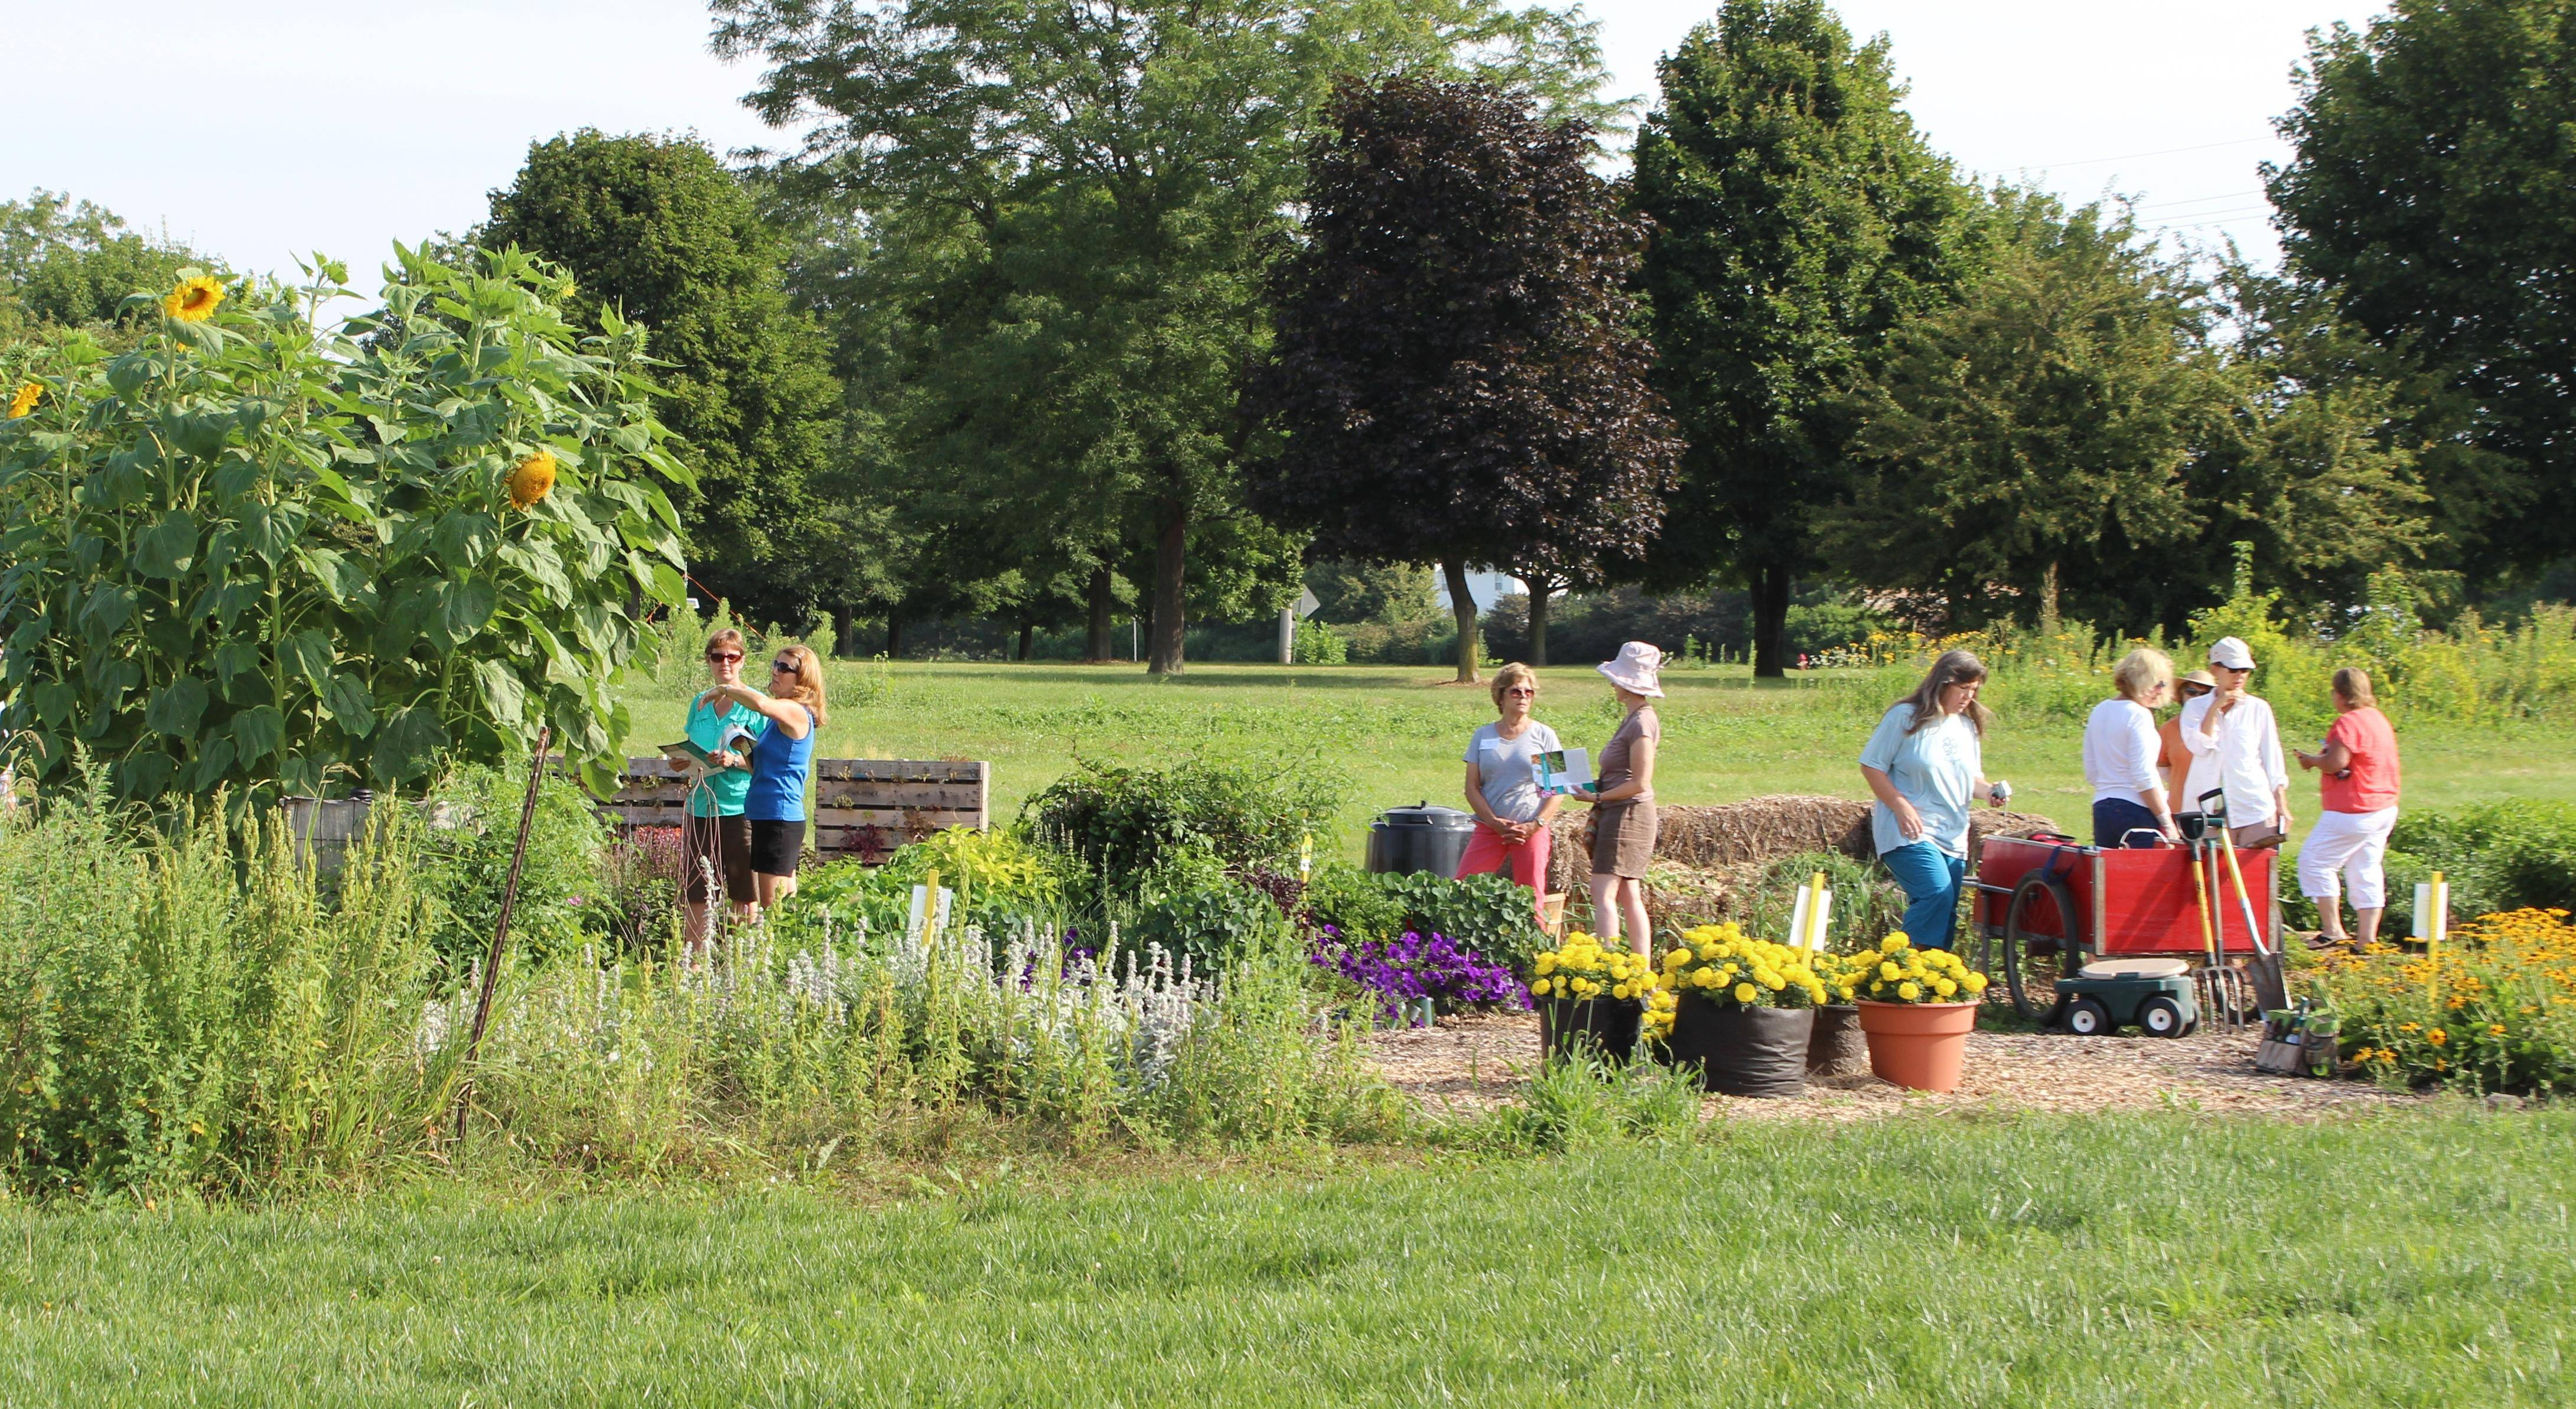 University of Illinois Extension Master Gardeners of Kane County will host an open house for the 2014 Idea Garden from 9 to 11 a.m. Tuesday, July 8. Visit eight fun, yet functional, gardens, all of which can be easily replicated at home.